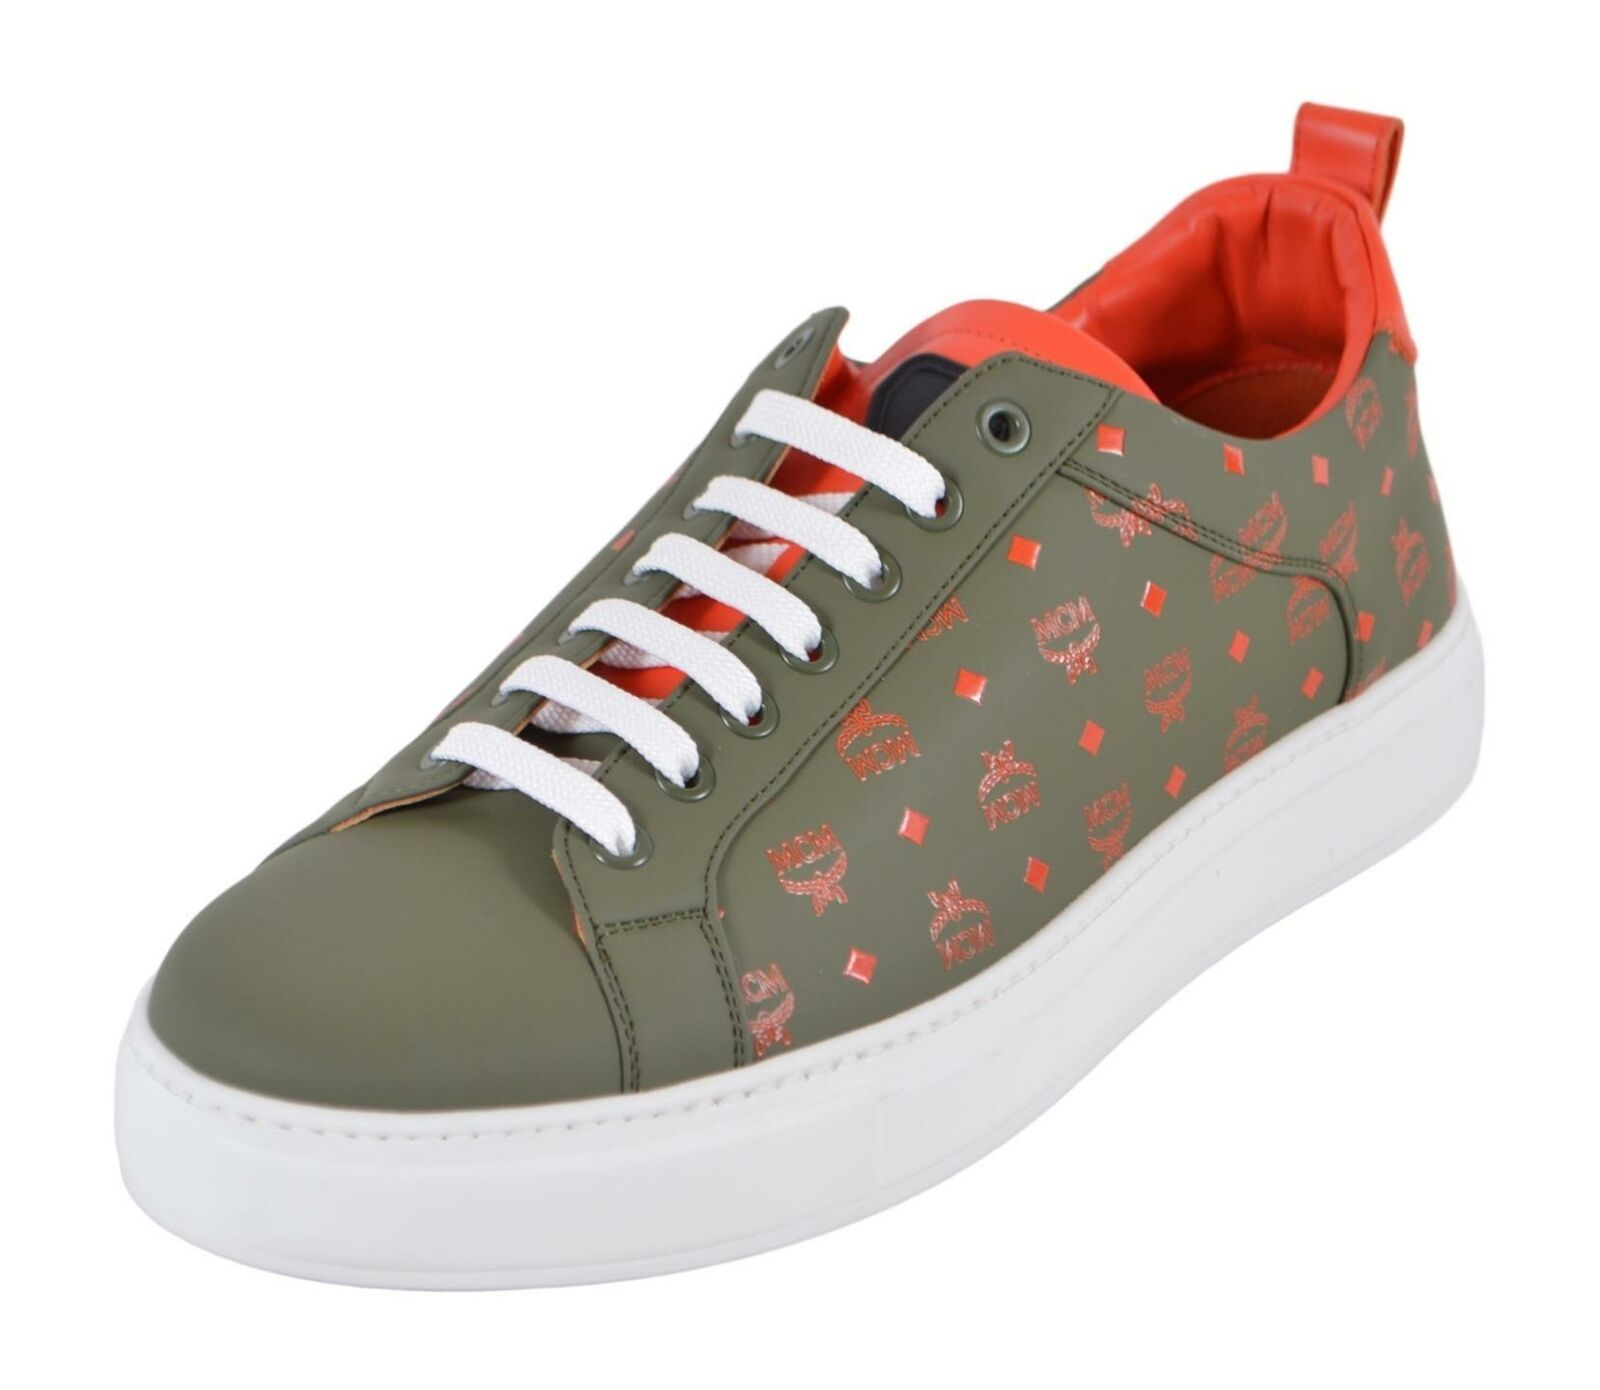 Primary image for New MCM Men's Winter Moss Leather Visetos Pattern Low Top Sneakers Shoes 44 11